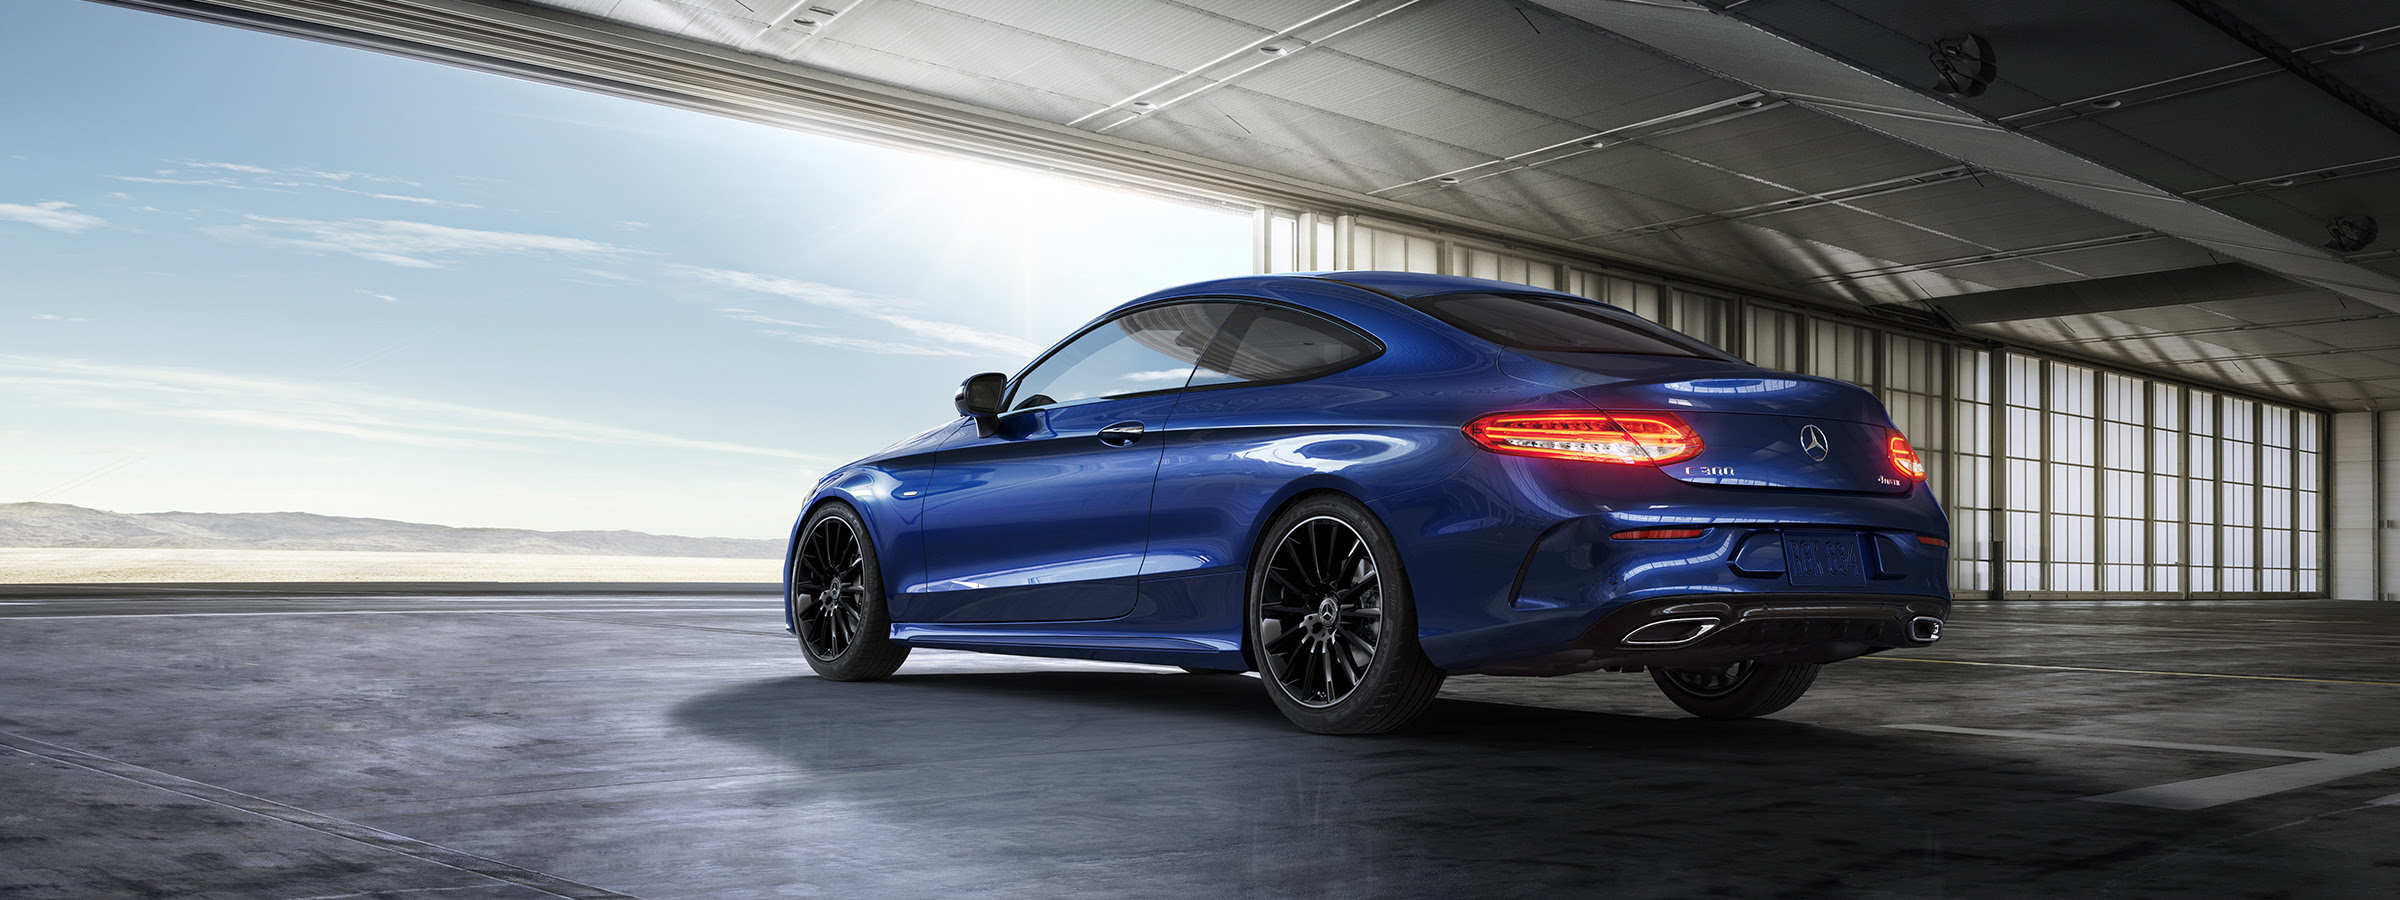 2018 C-Class Coupe | Mercedes-Benz